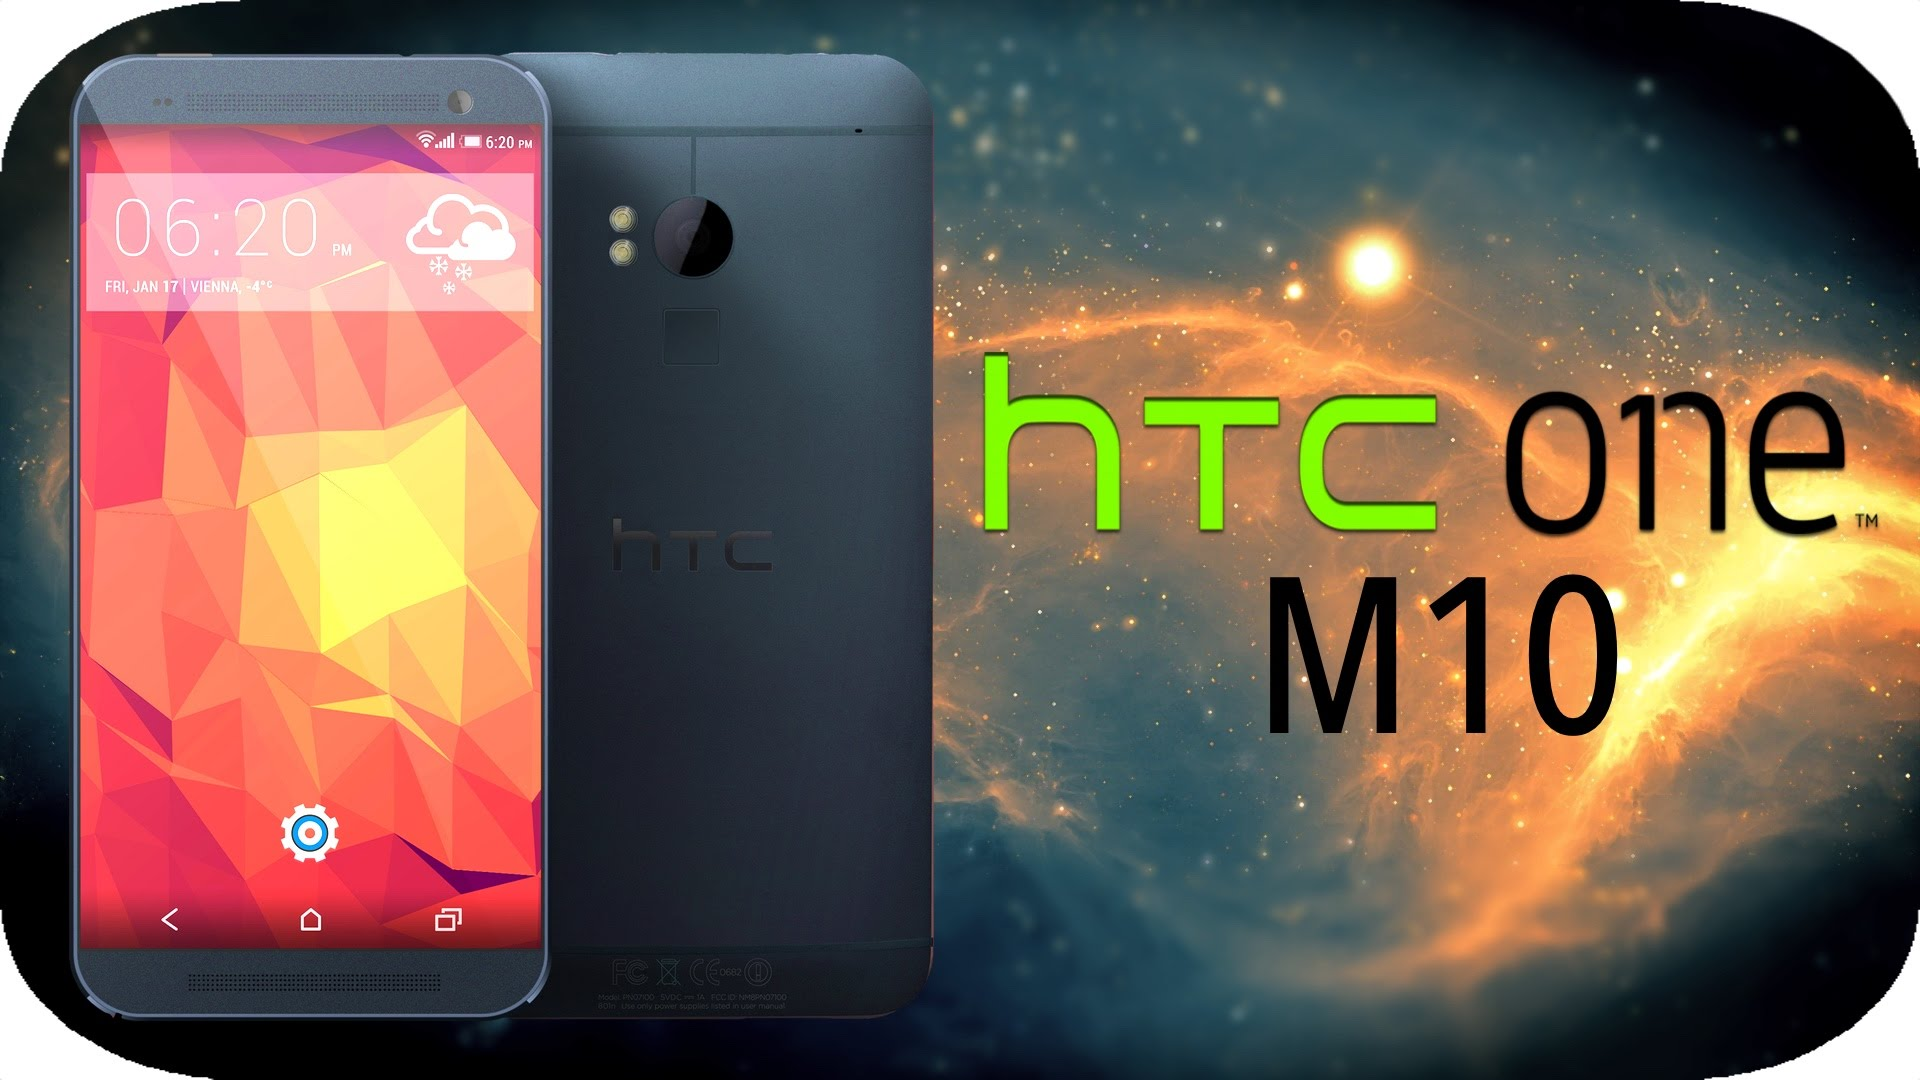 The Coming New Agent With The Last One: HTC One M10